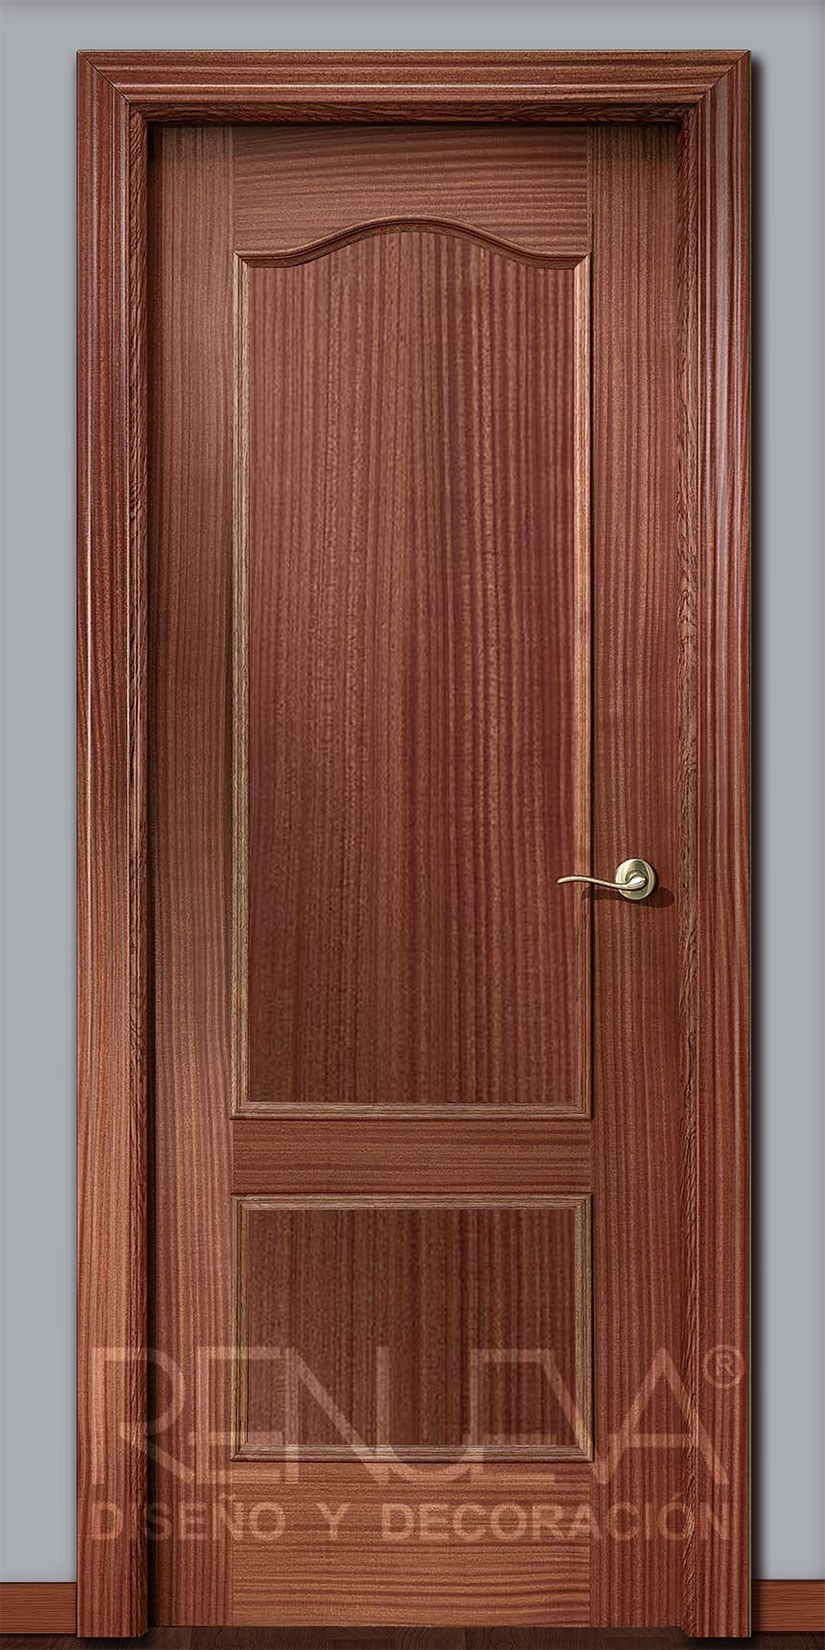 Oferta puerta modelo 32 madera de sapelly barnizada for Decor 1 32